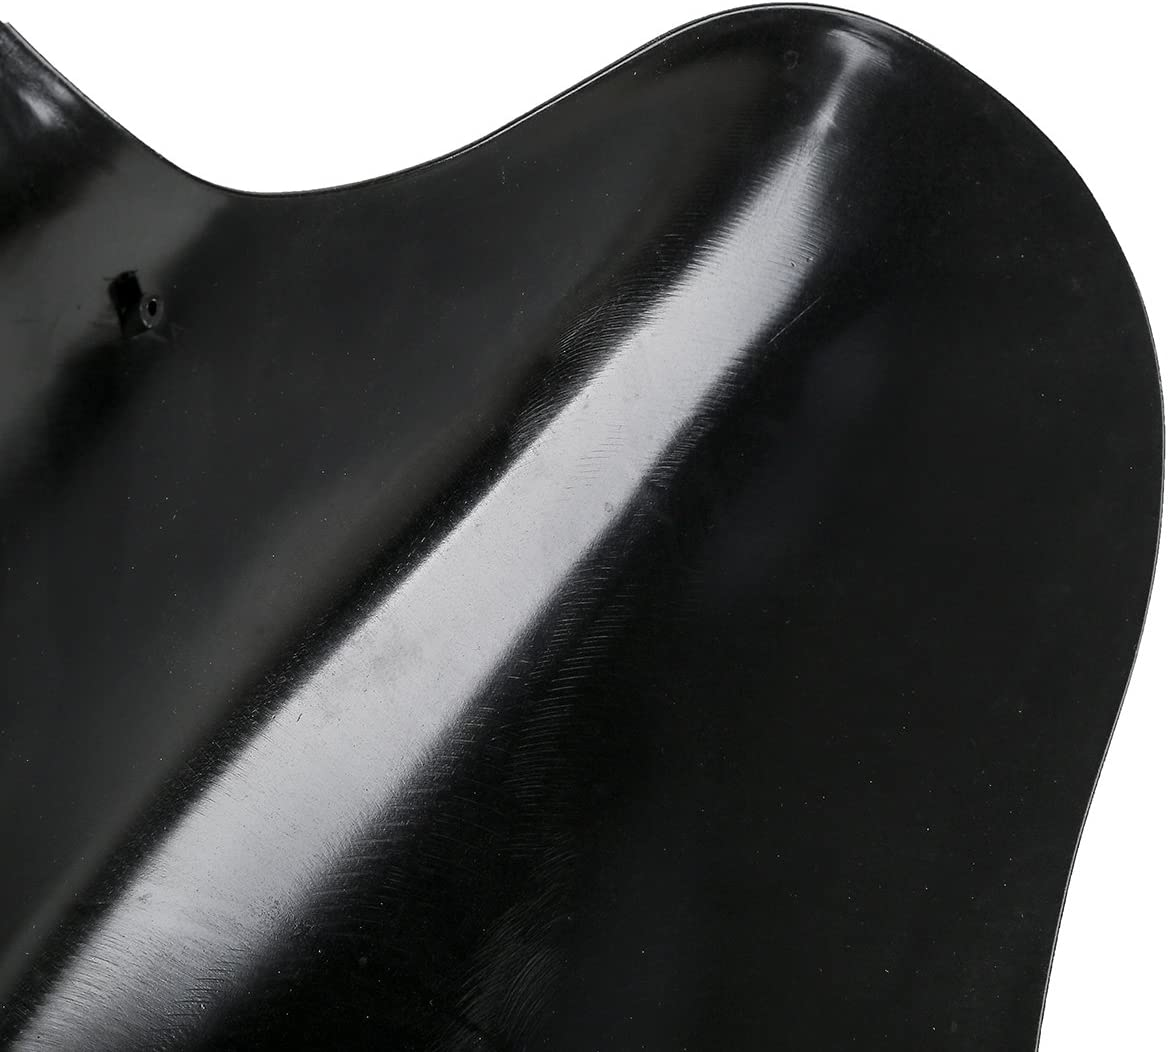 TCMT Matte Black Front Outer Batwing Fairing Fits For Yamaha V Star 650 1100 classic